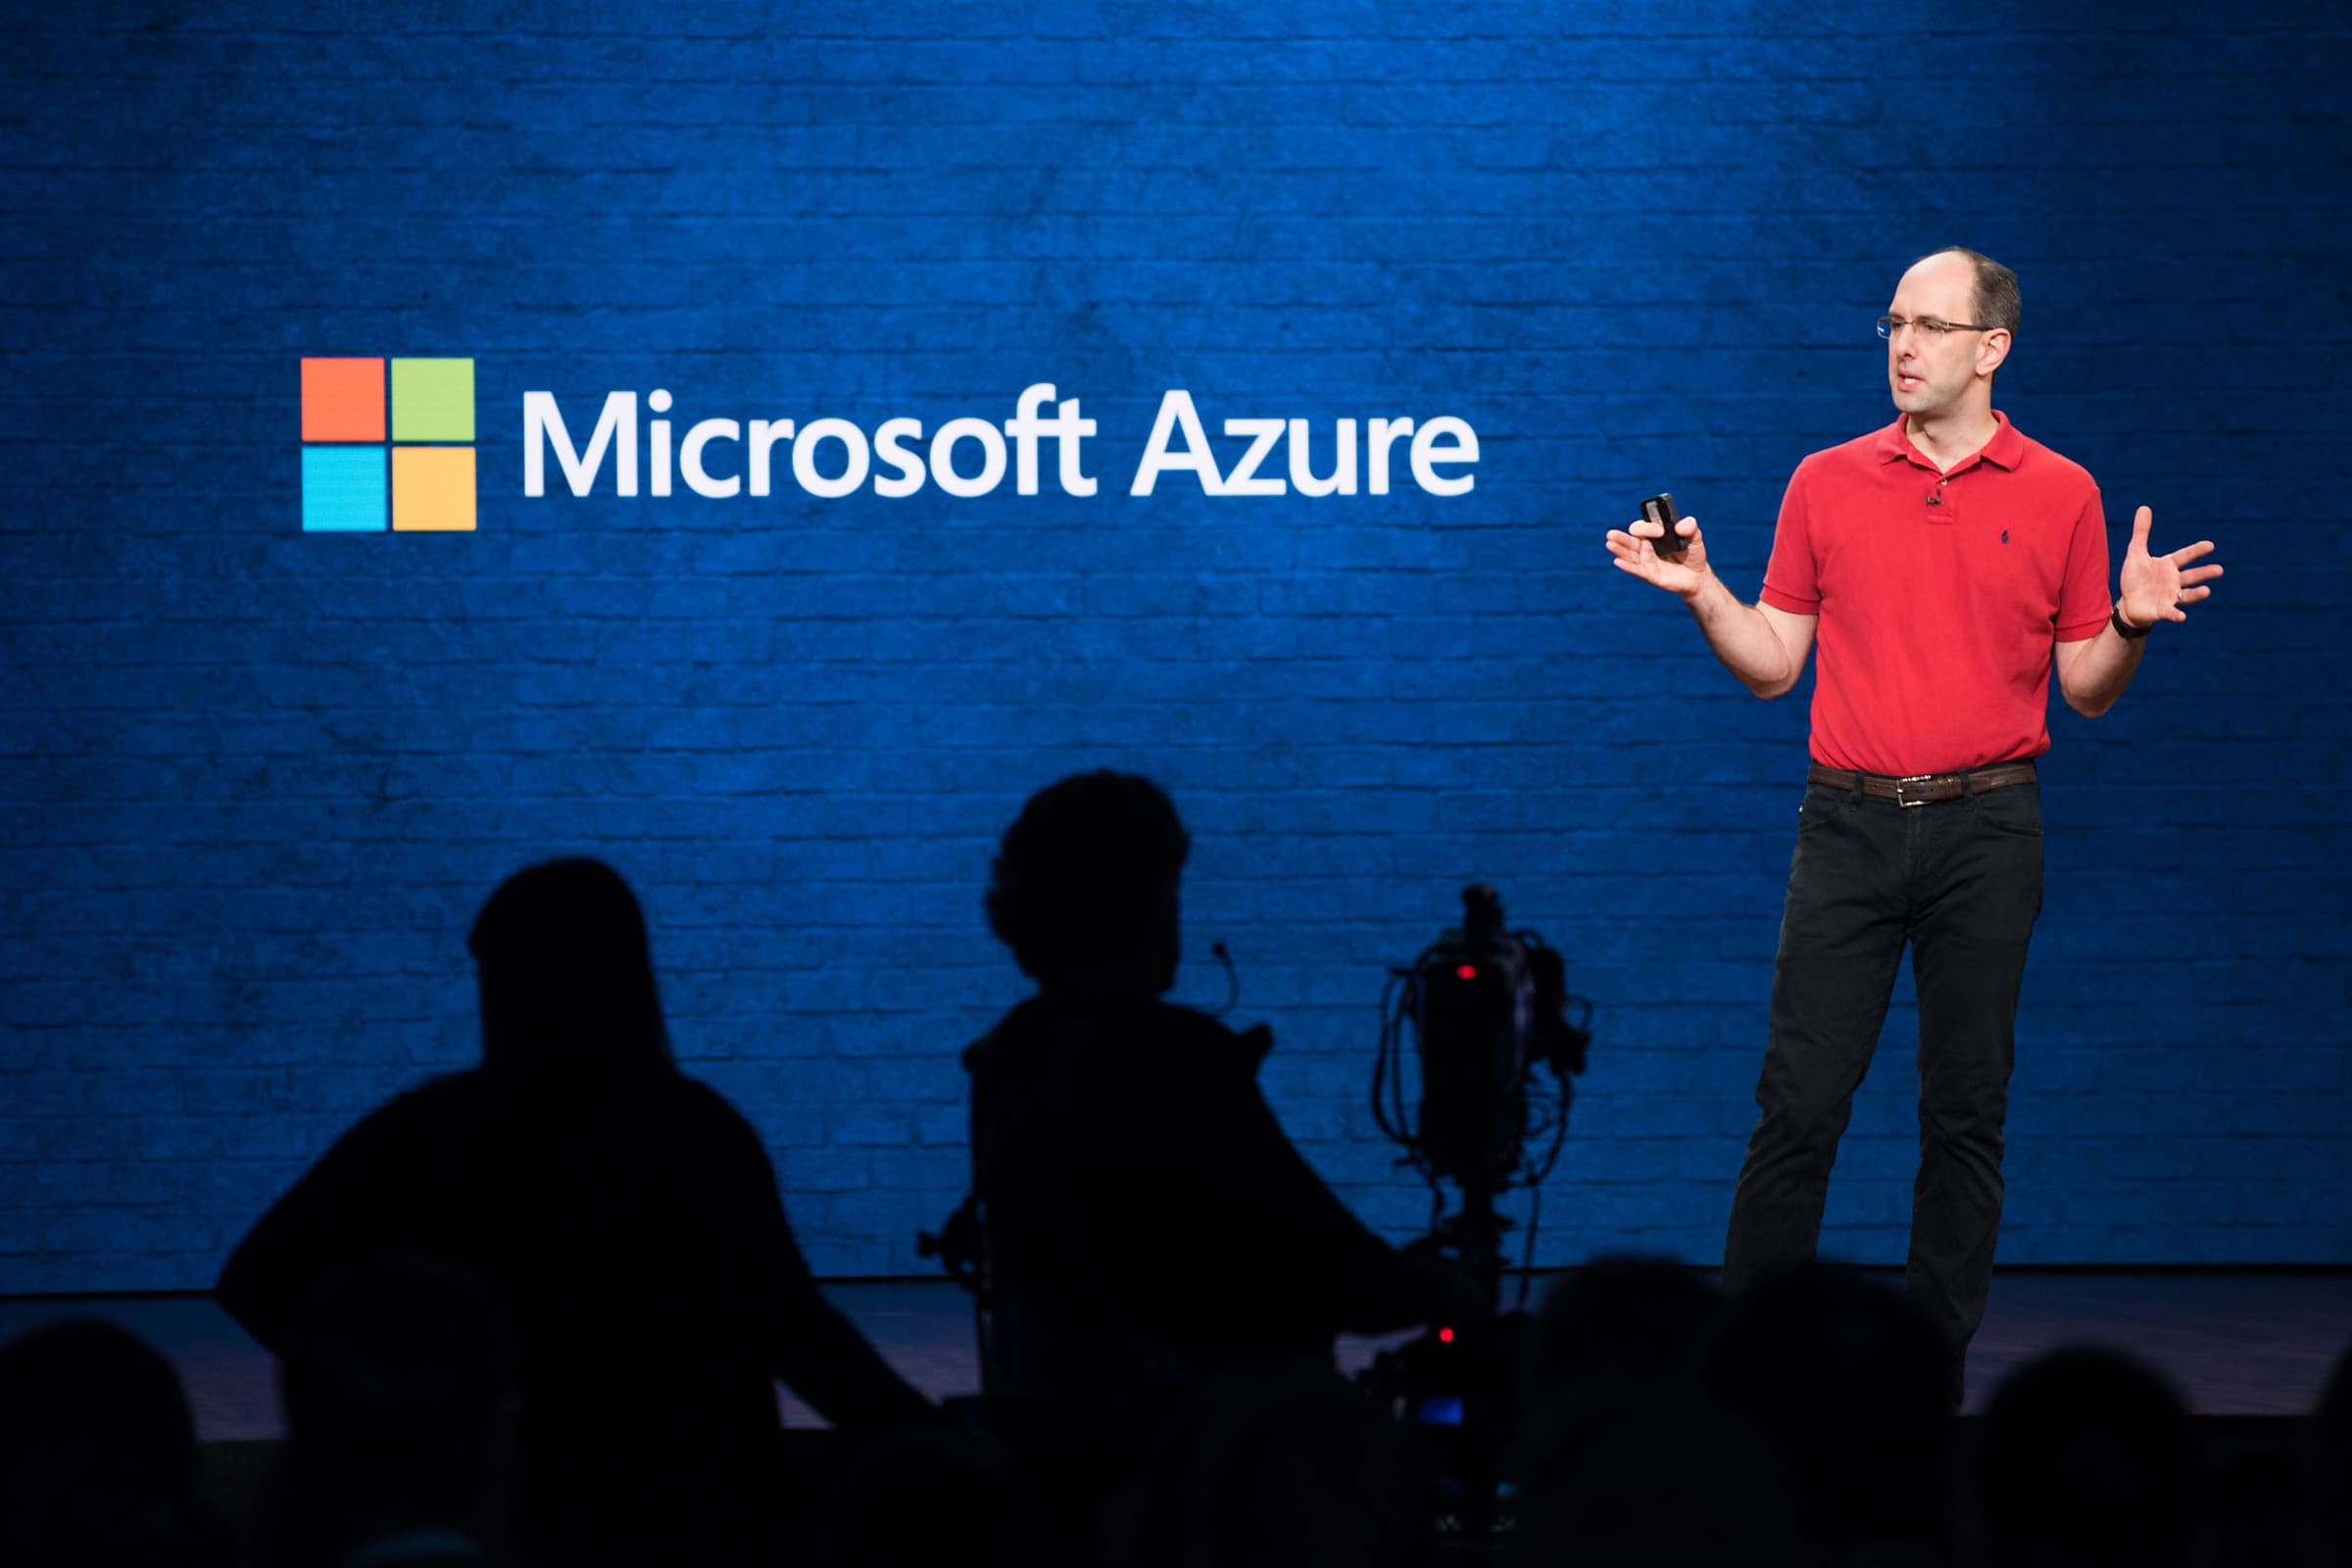 Microsoft is sharing previously secret information to help cloud customers save energy